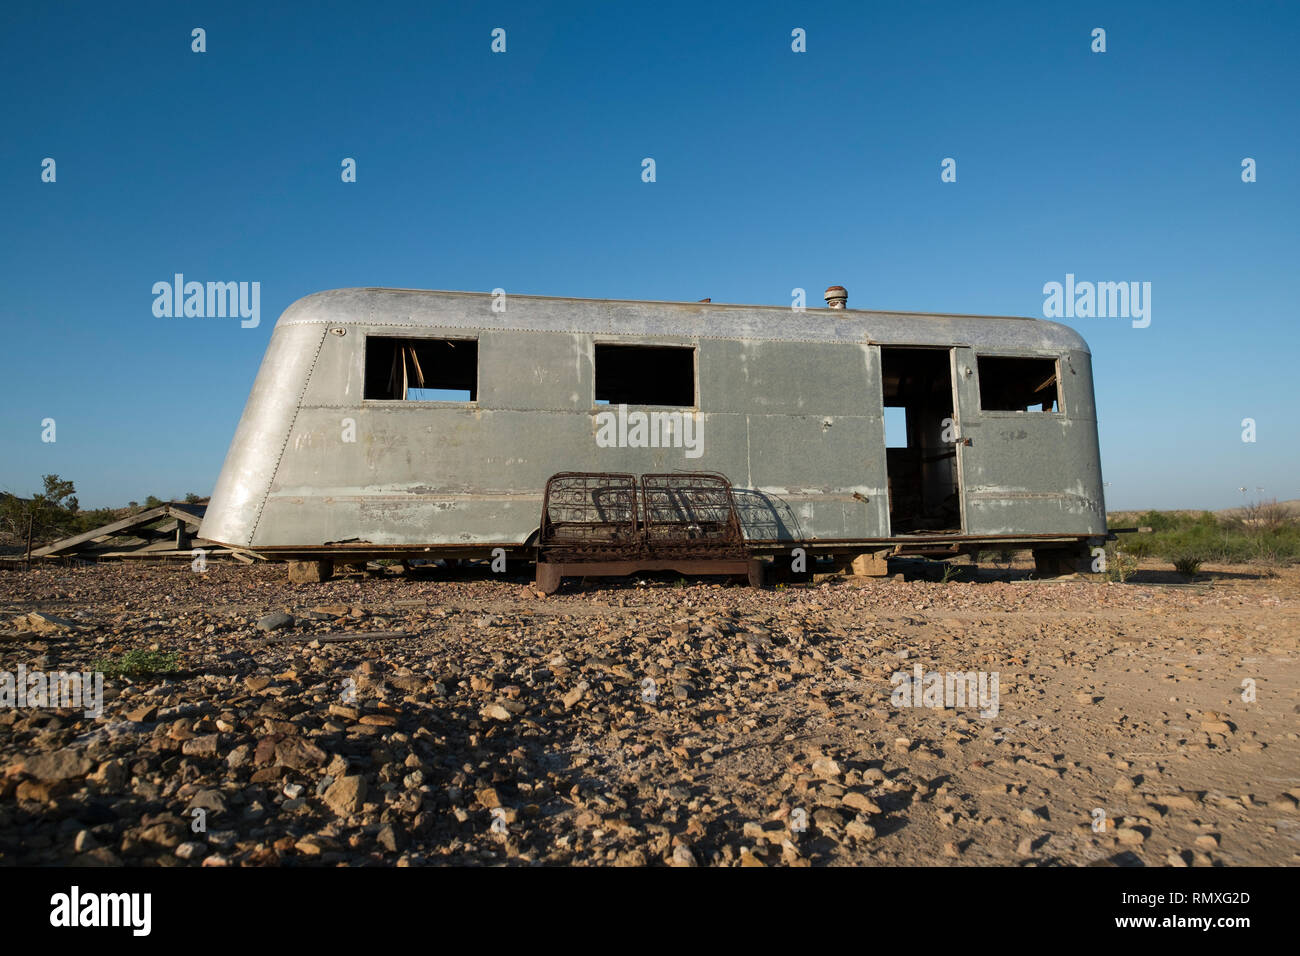 Airstream Caravan Vintage airstream vintage high resolution stock photography and